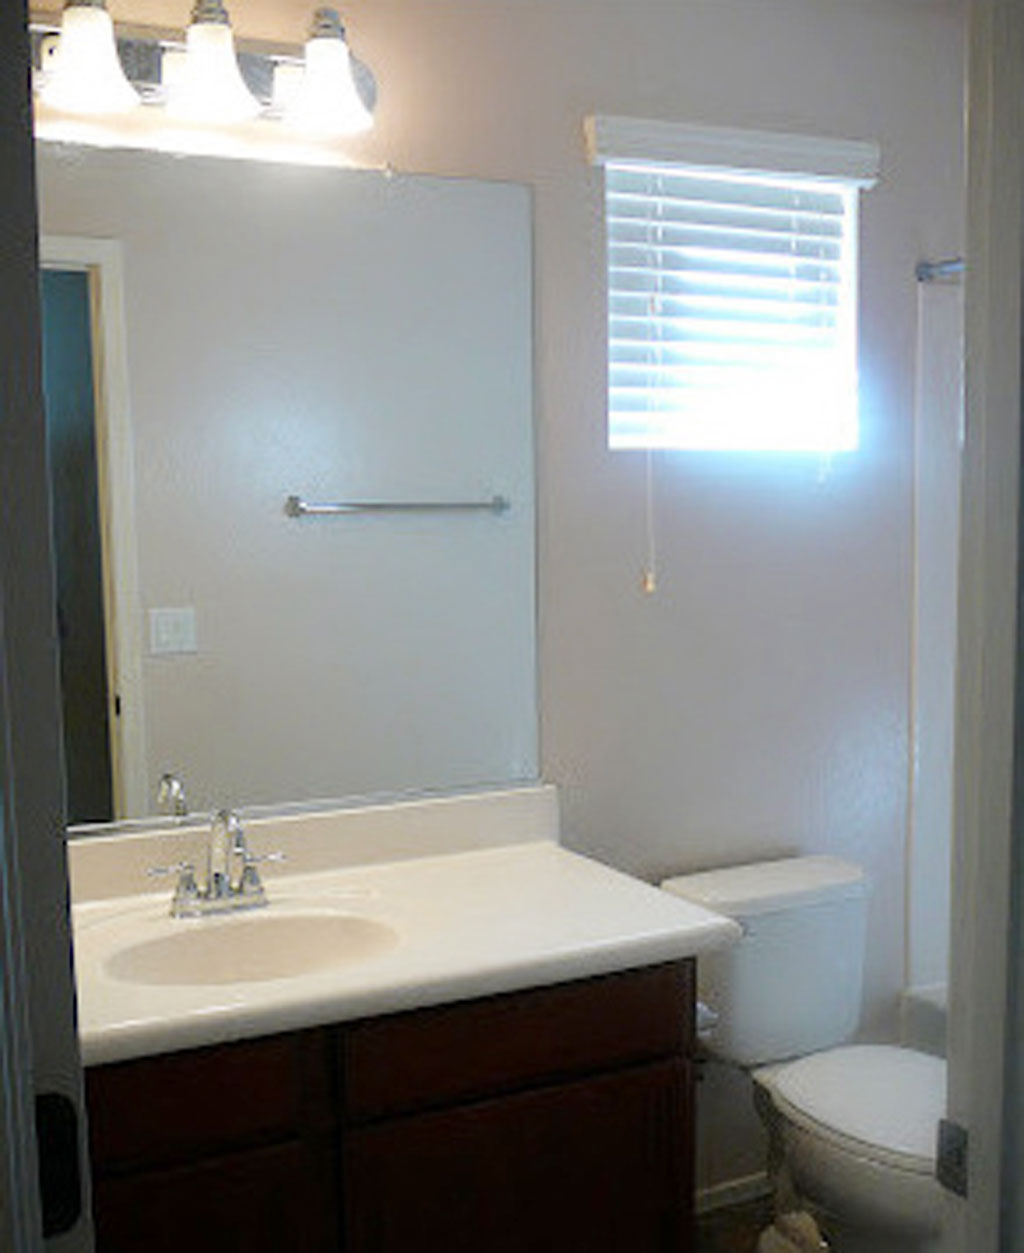 Charmant Minimalis Small Bathroom Windows